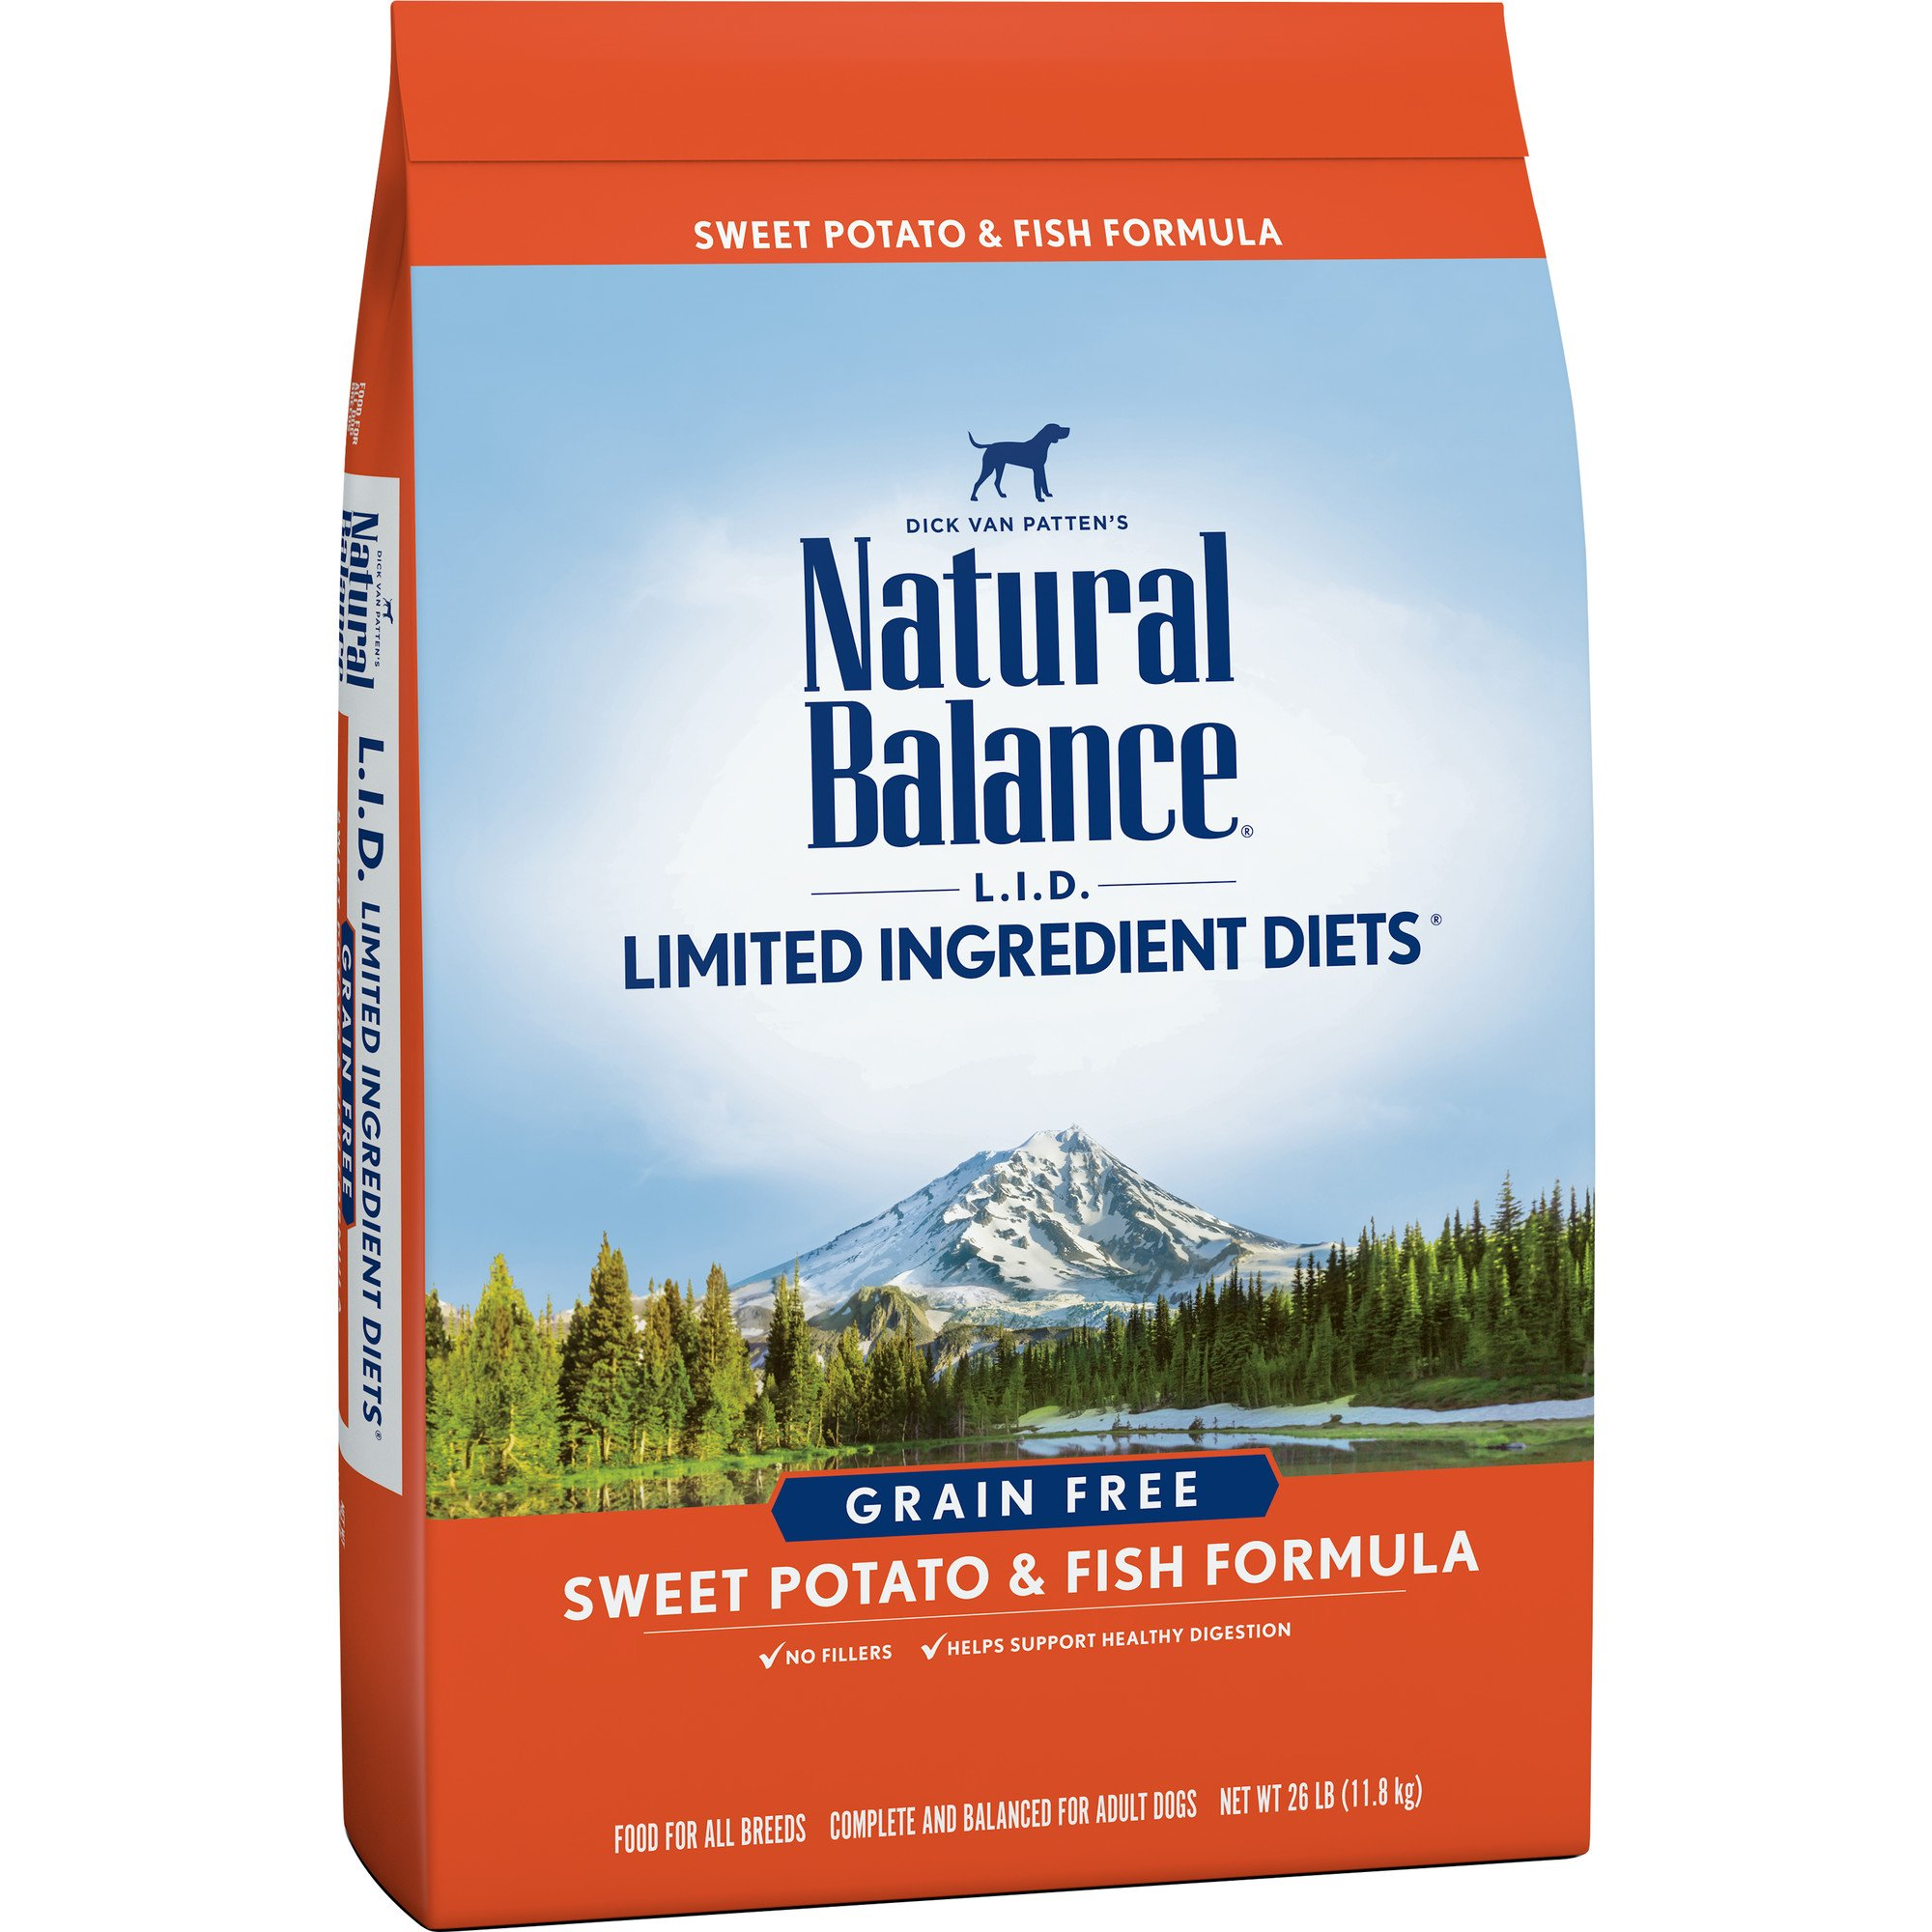 Natural Balance Limited Ingredient Diets Sweet Potato & Fish Formula Dry Dog Food, 26 Pounds, Grain Free by Natural Balance